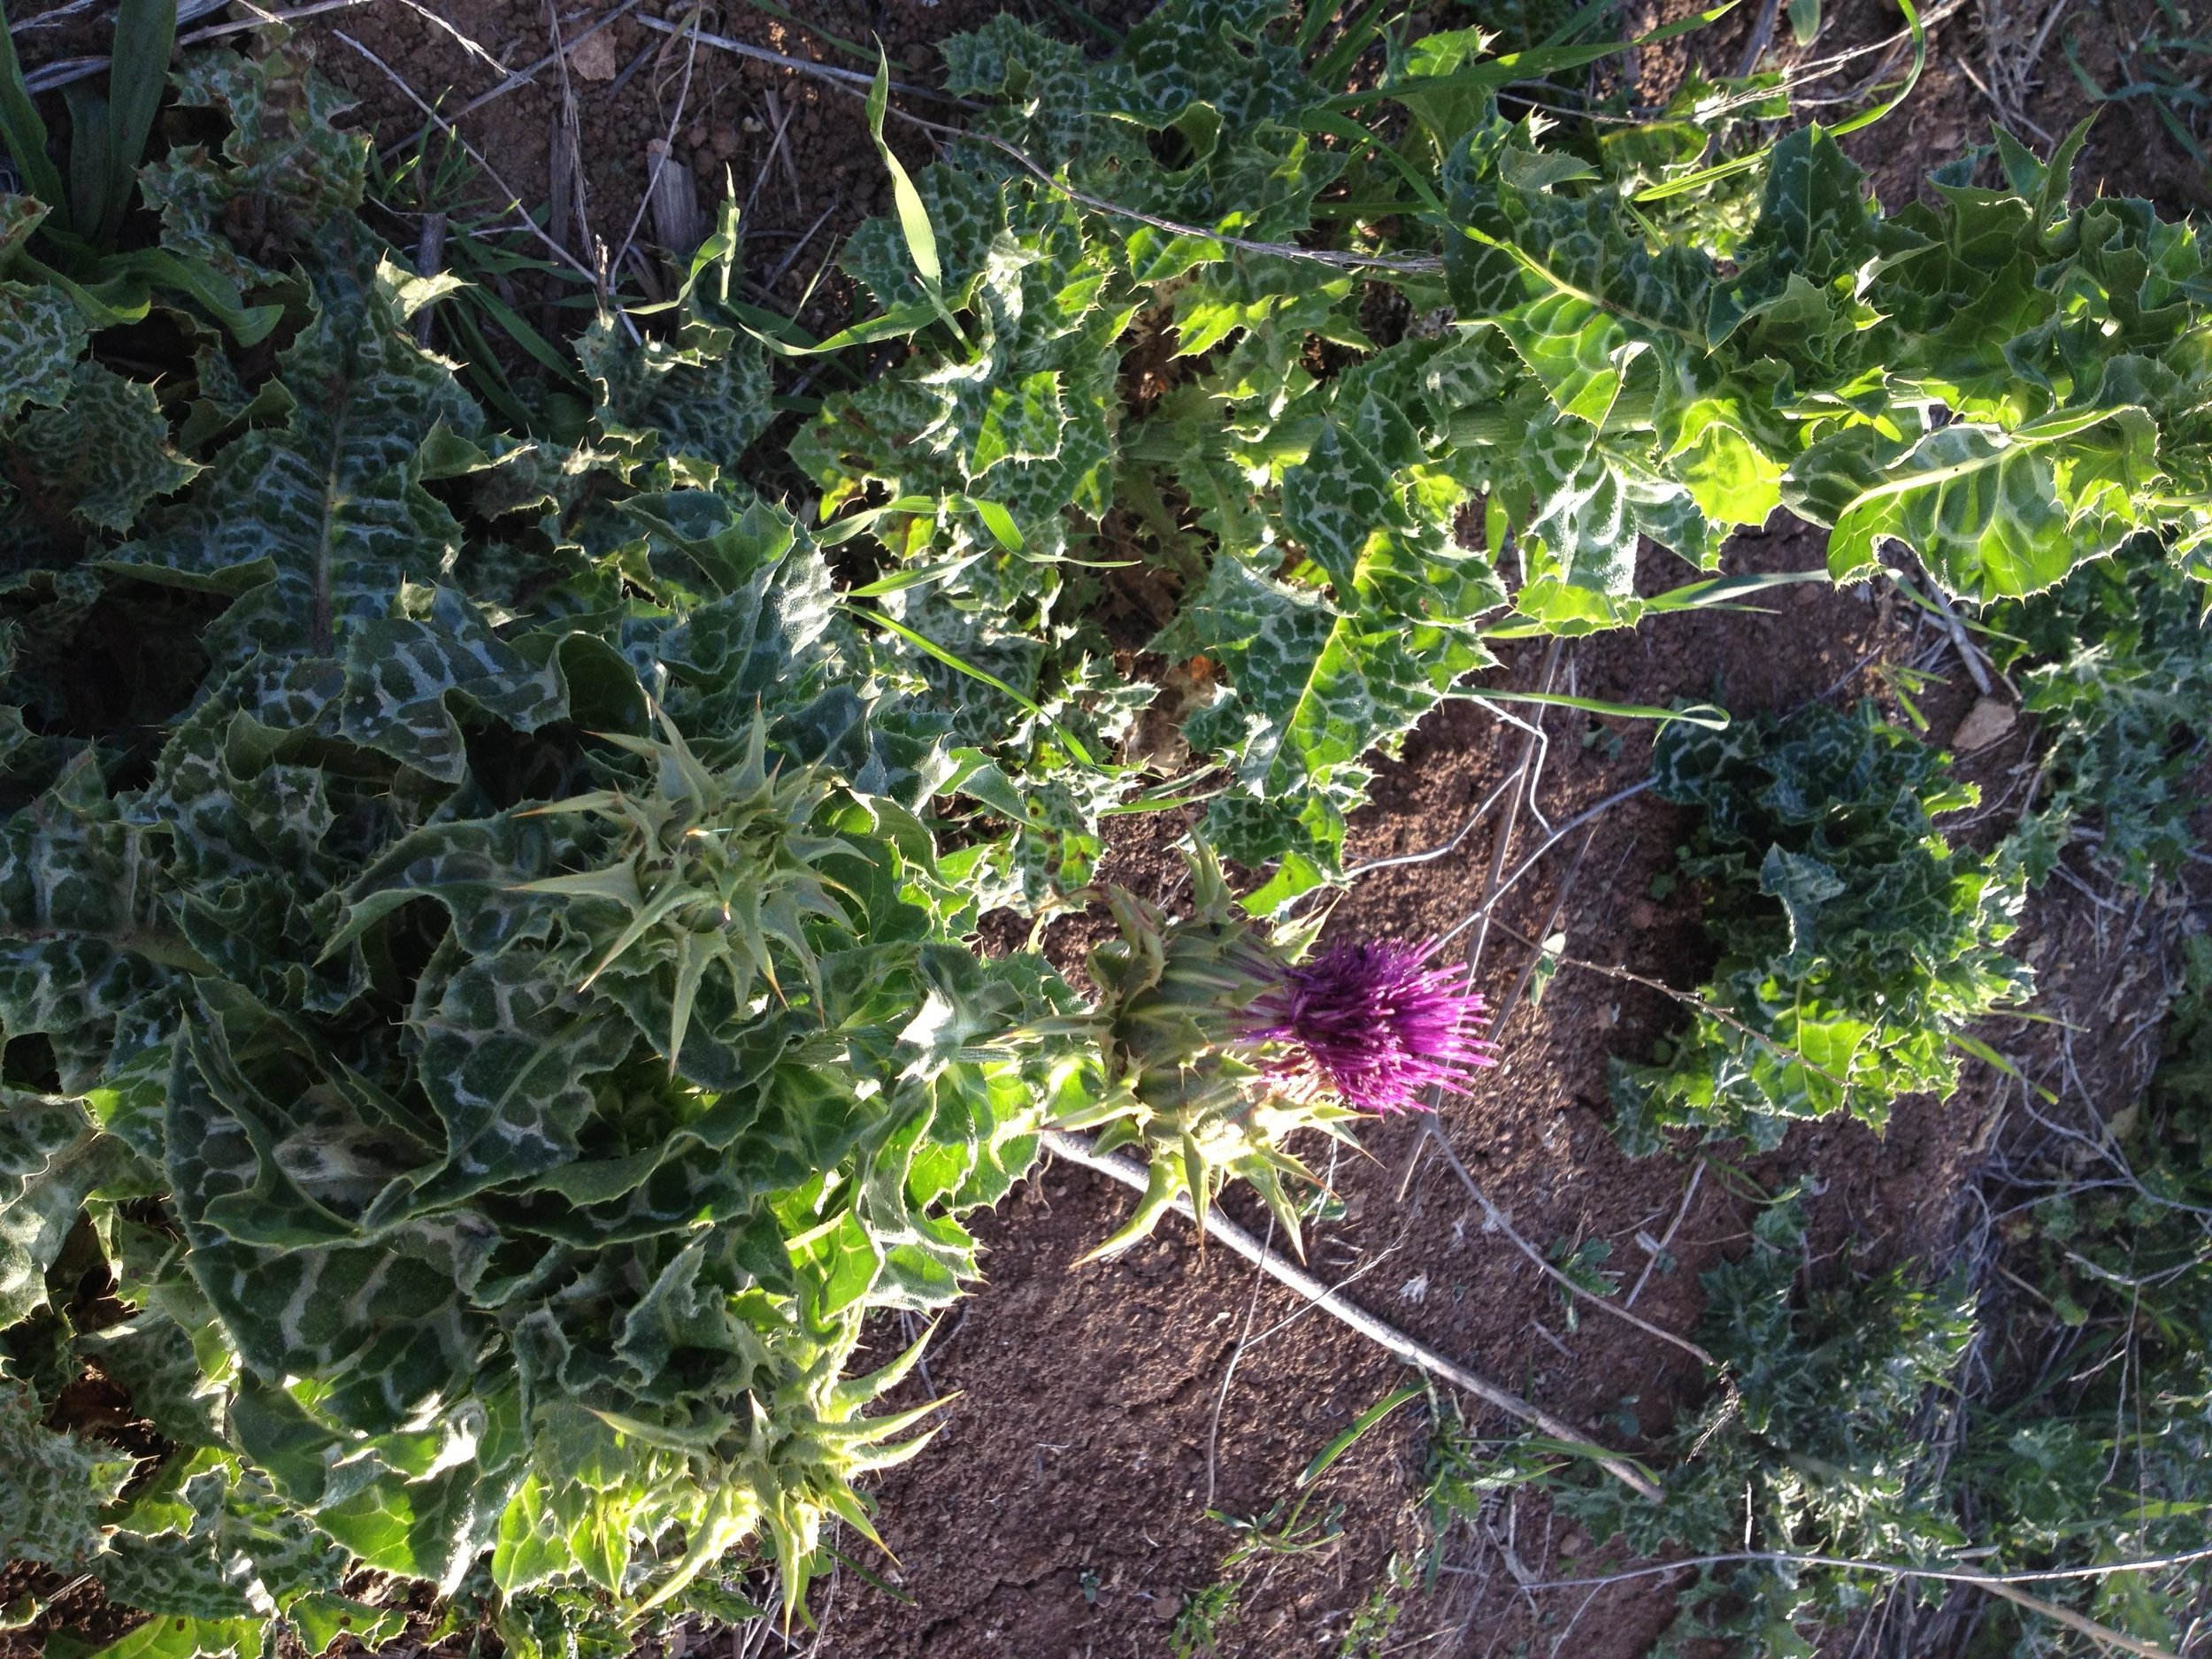 Thistles-ouch.jpg